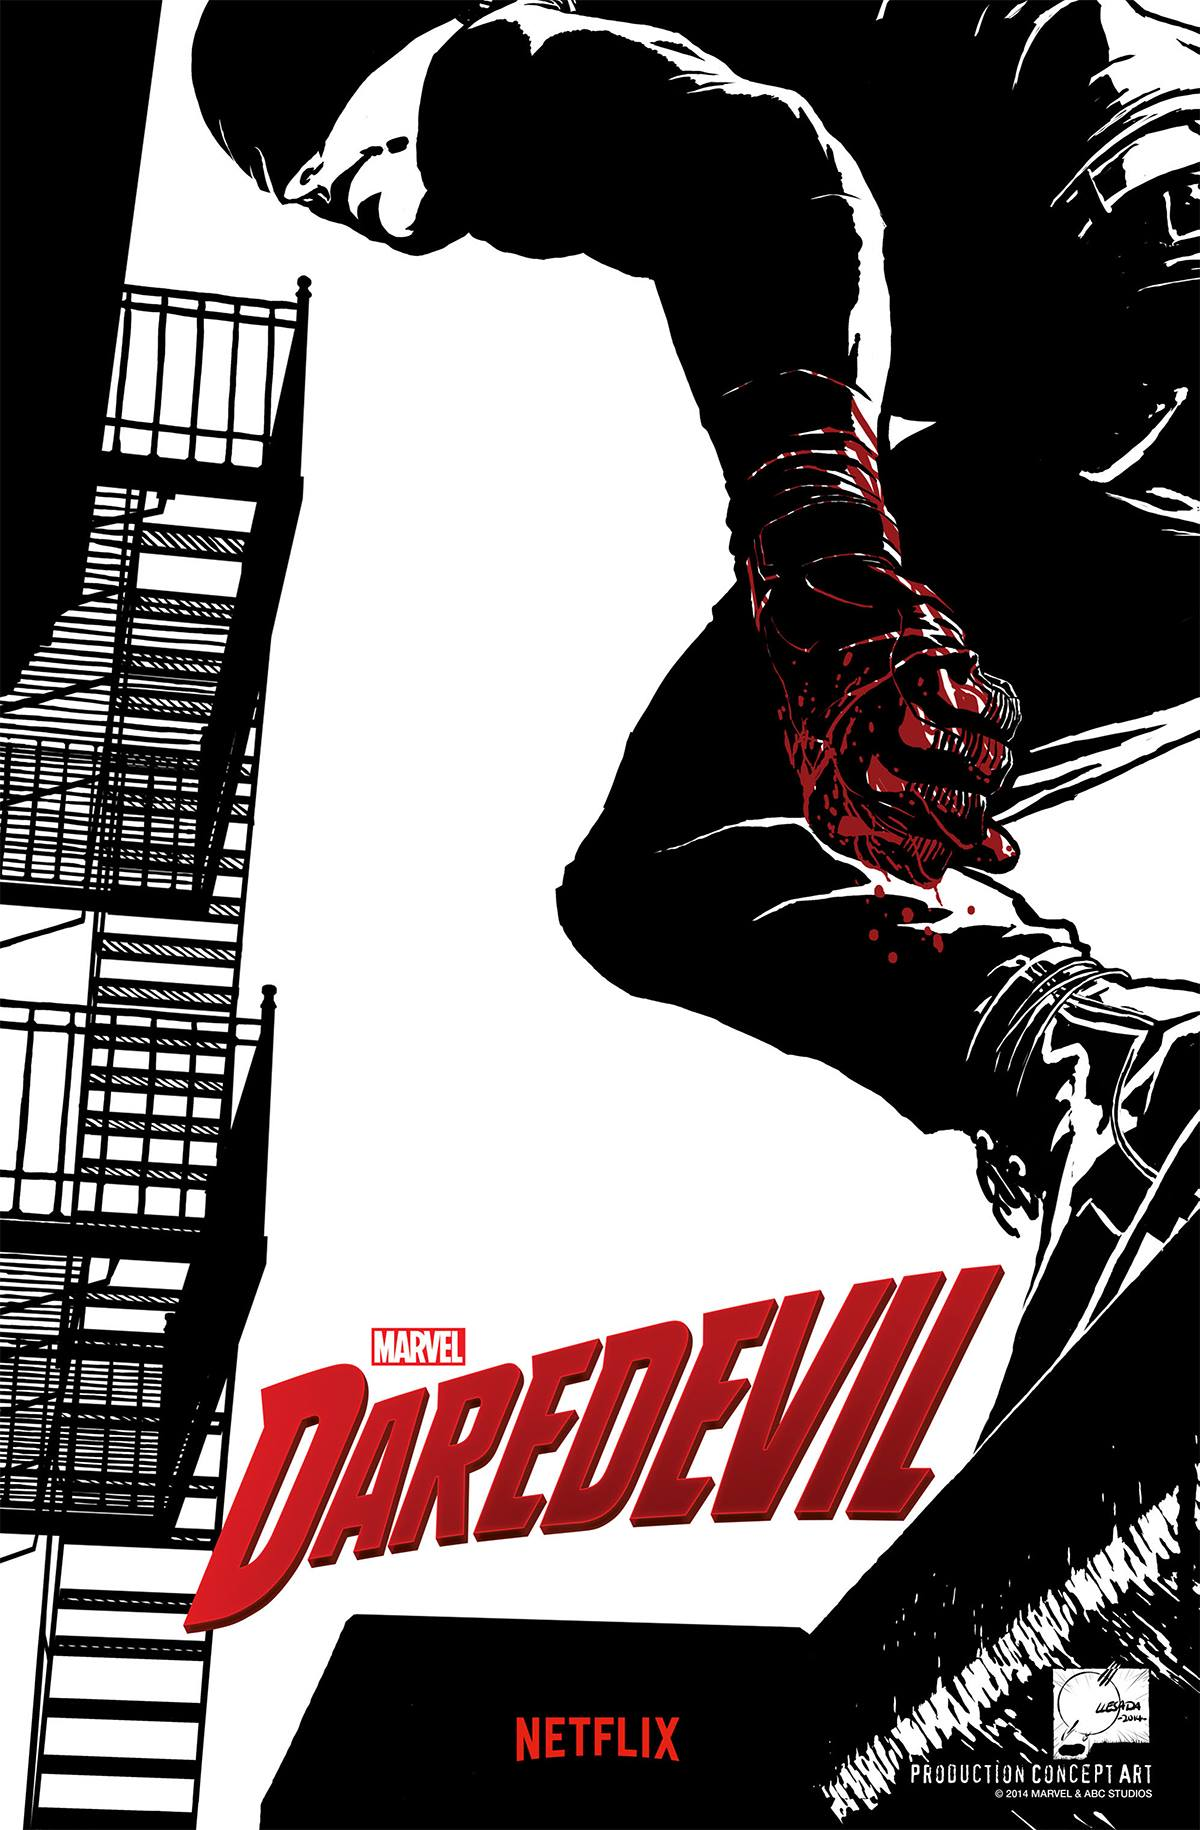 Marvel's Daredevil Concept Art